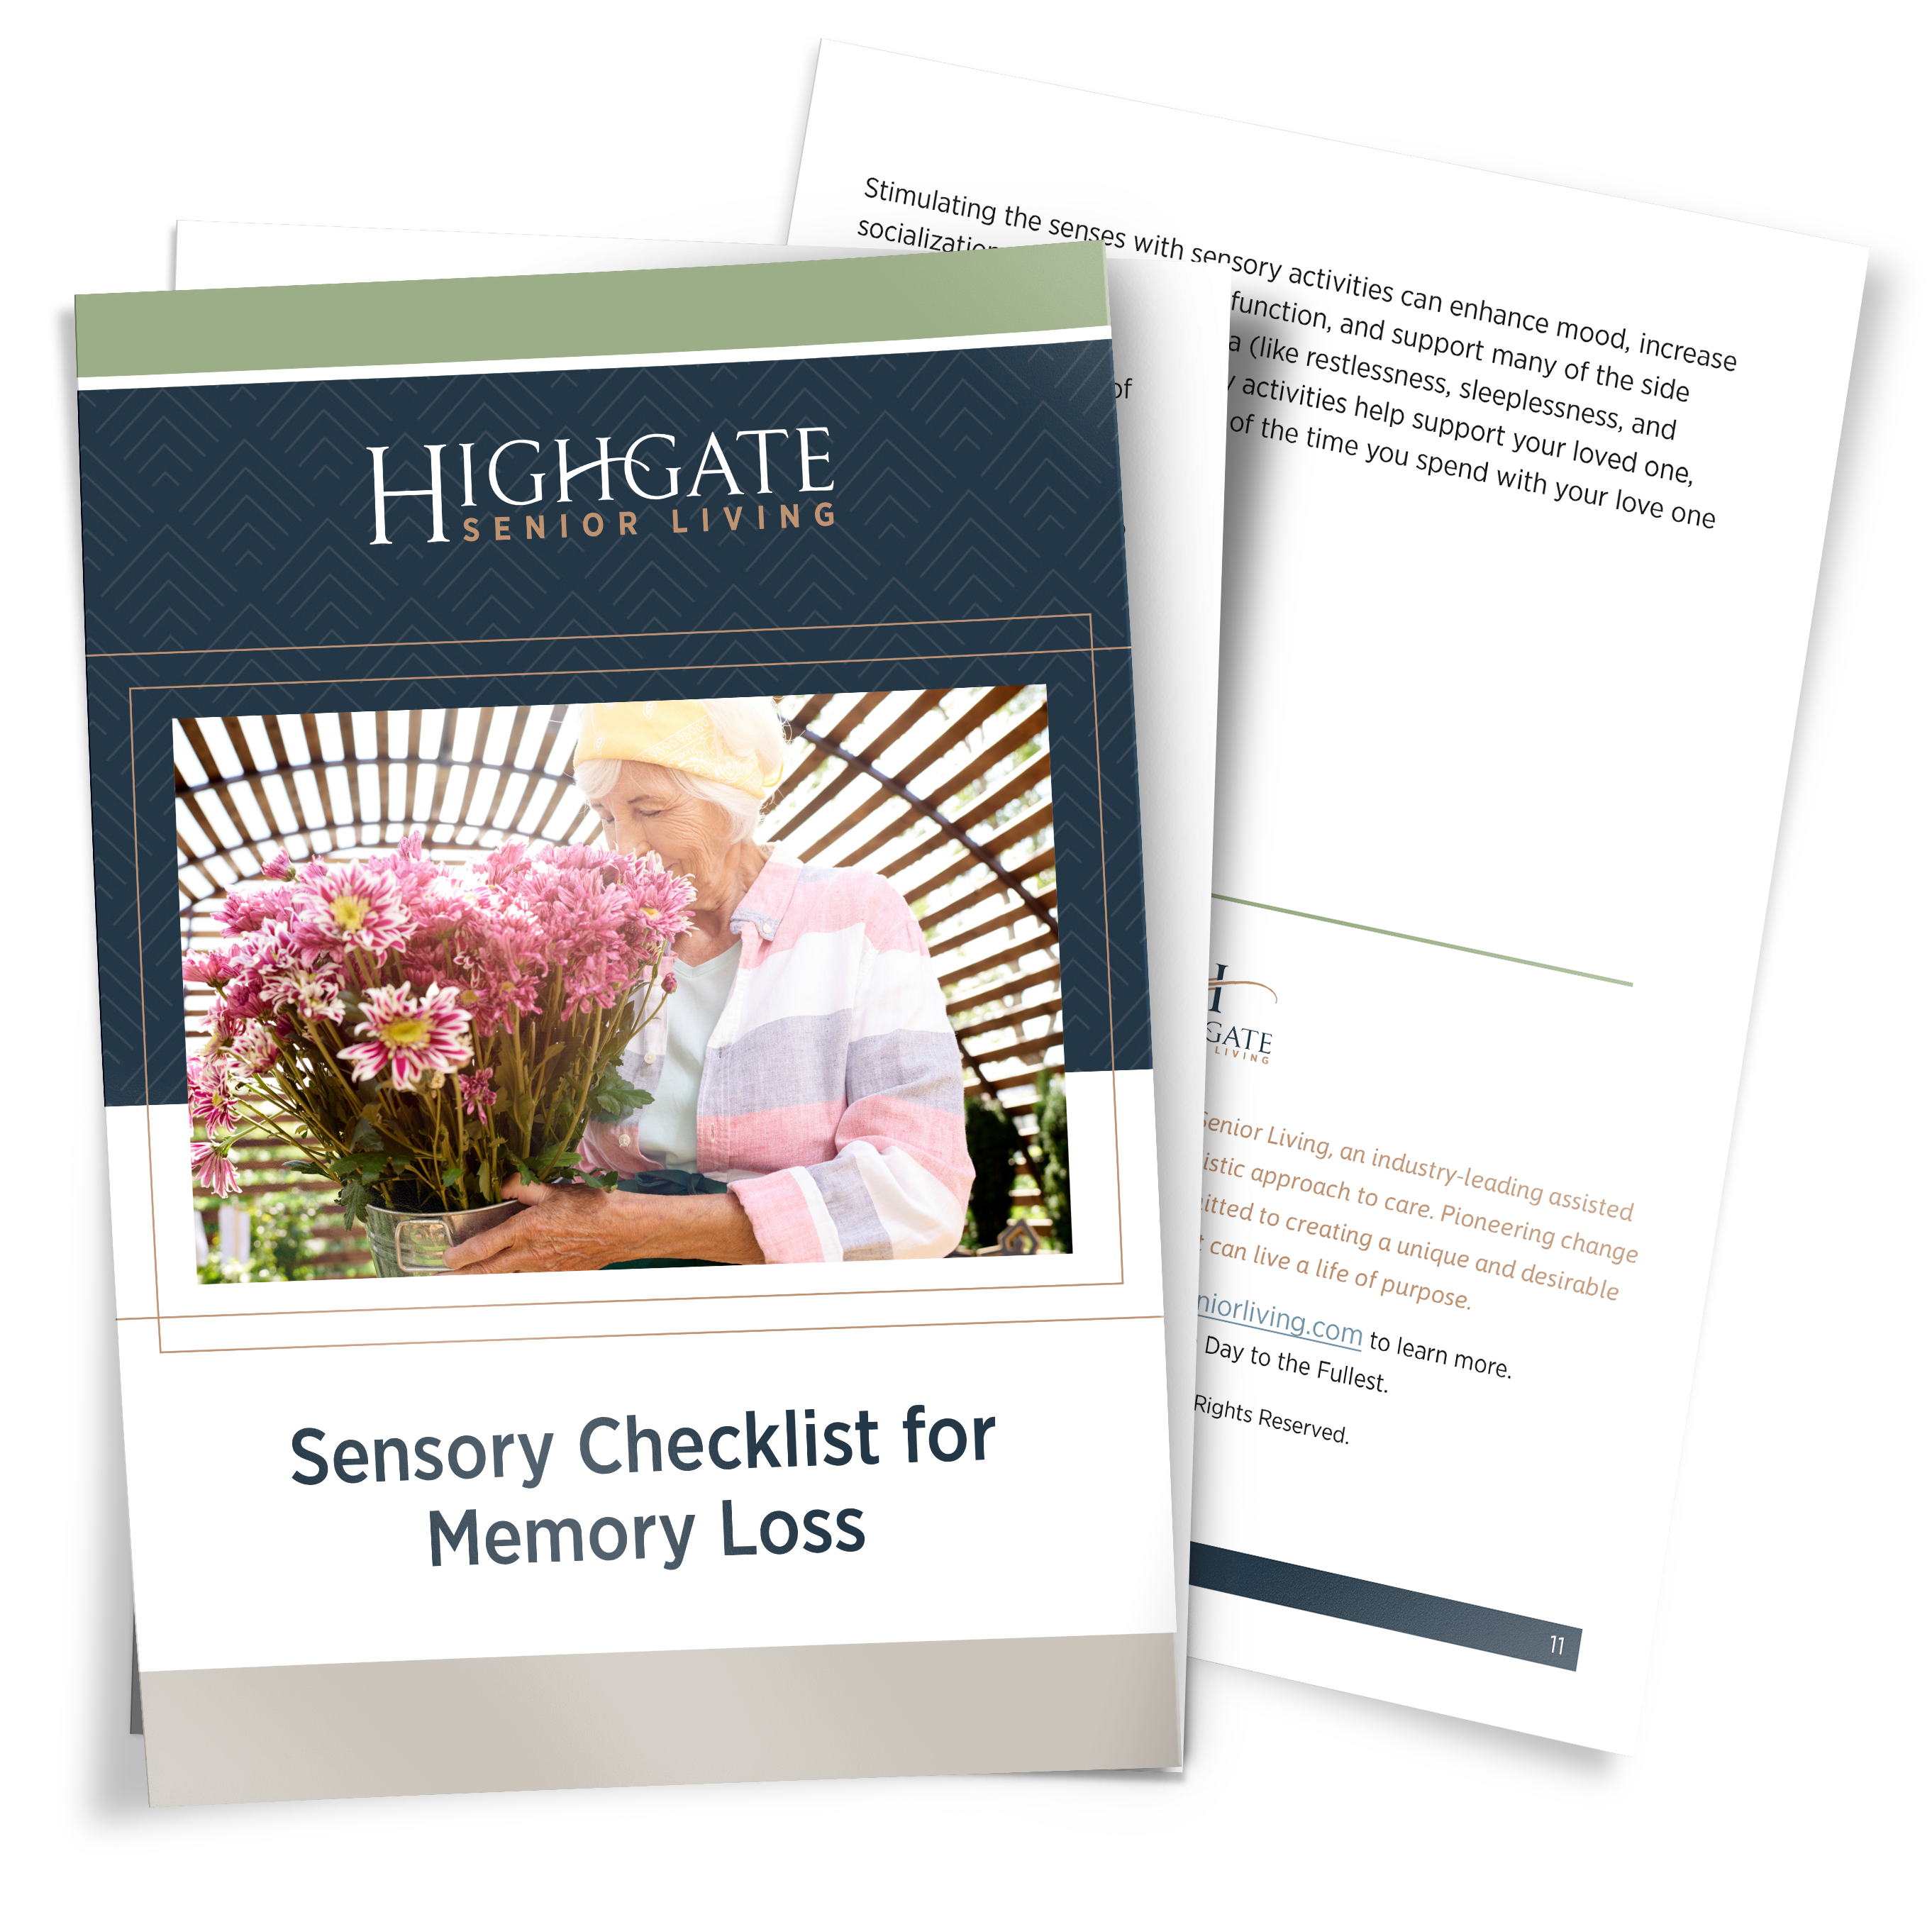 Sensory Checklist for Memory Loss